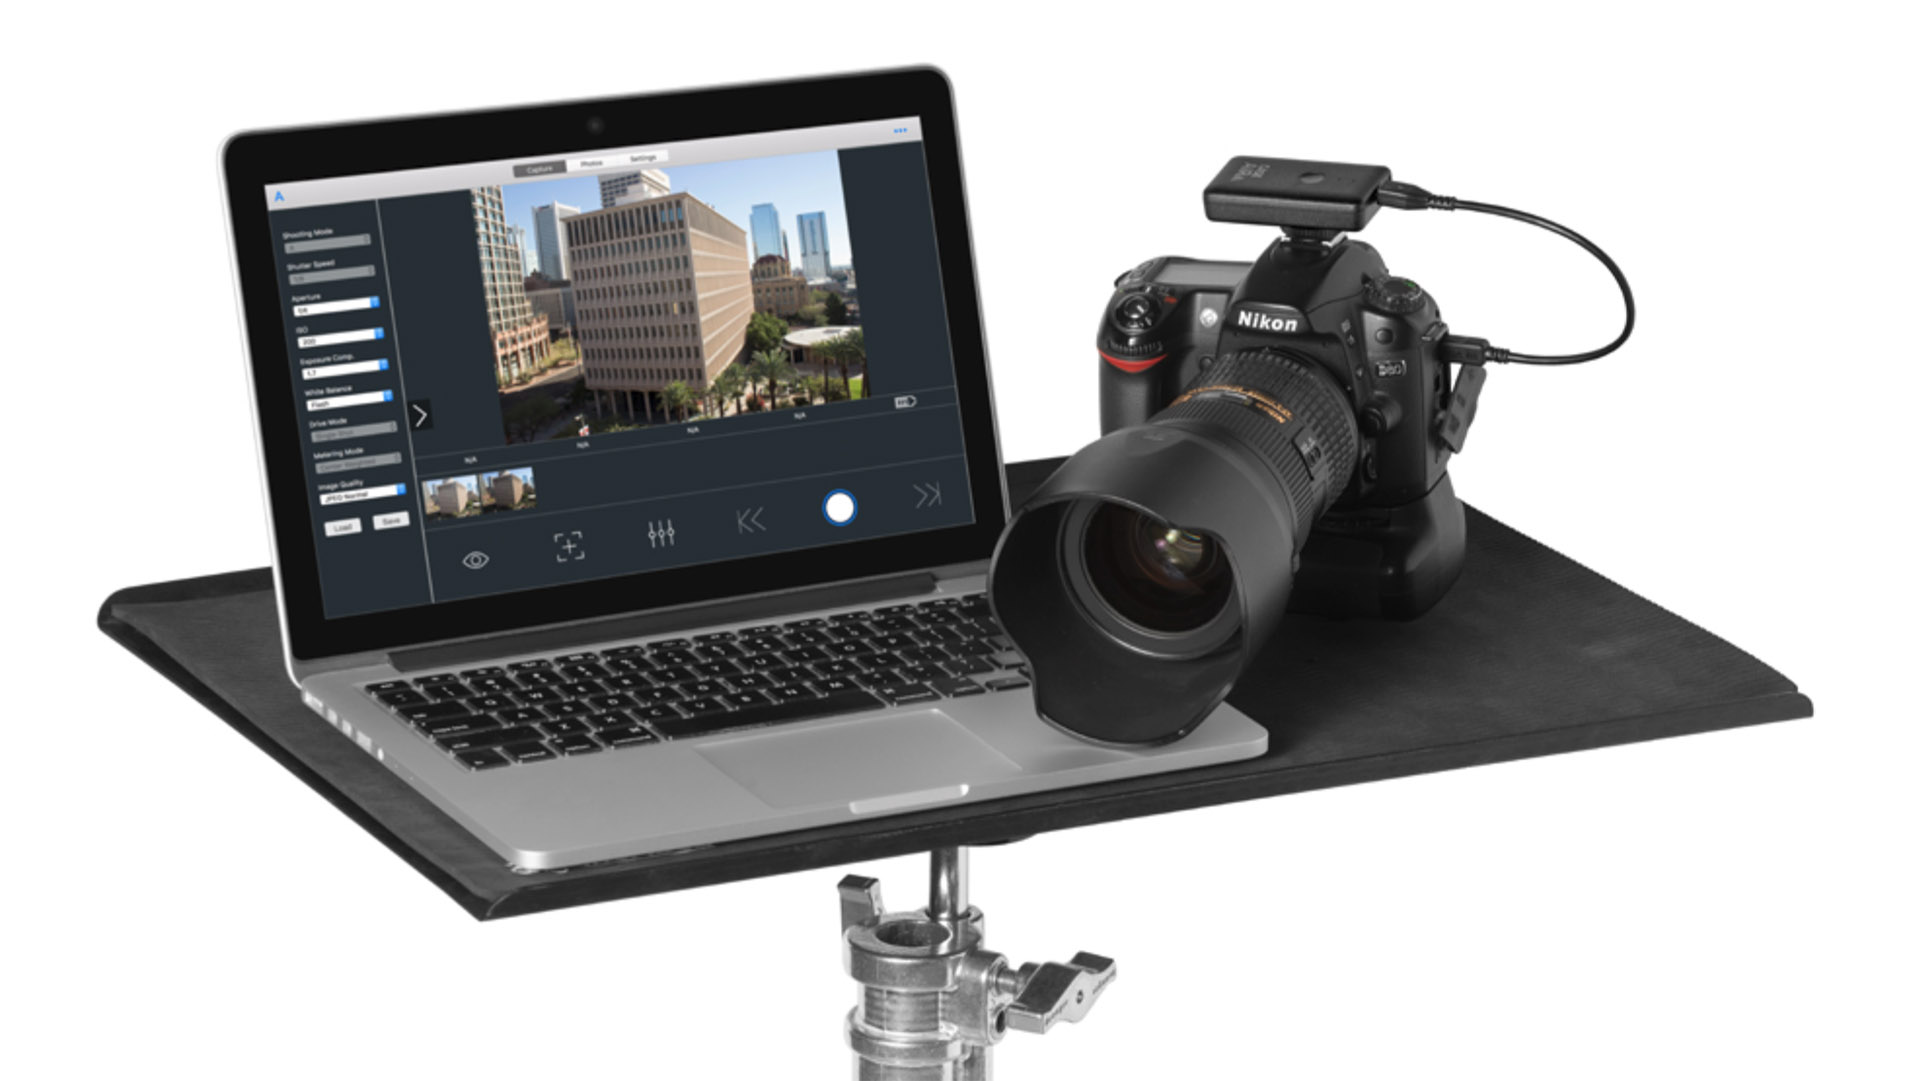 First Look: Tether Tools Onsite Power and Case Air Wireless Tethering System | Photofocus